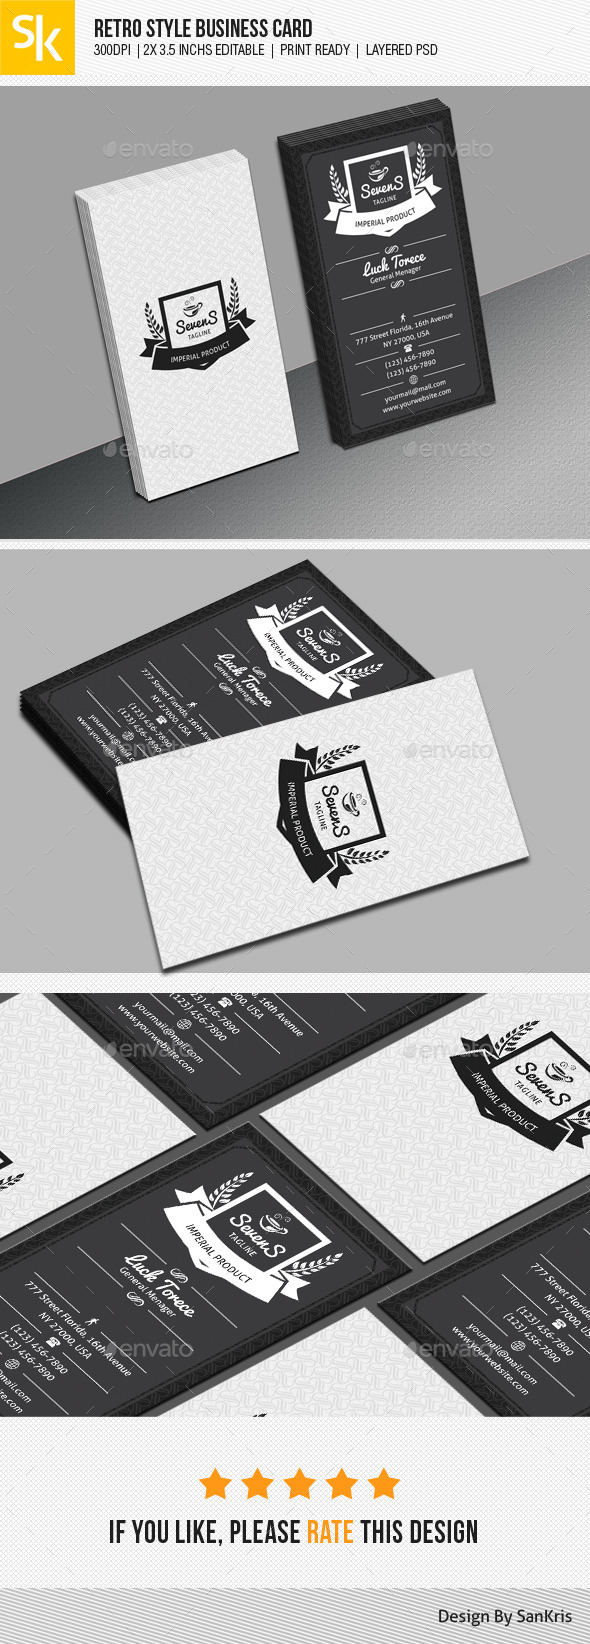 GraphicRiver Retro Style Business Card 11128183